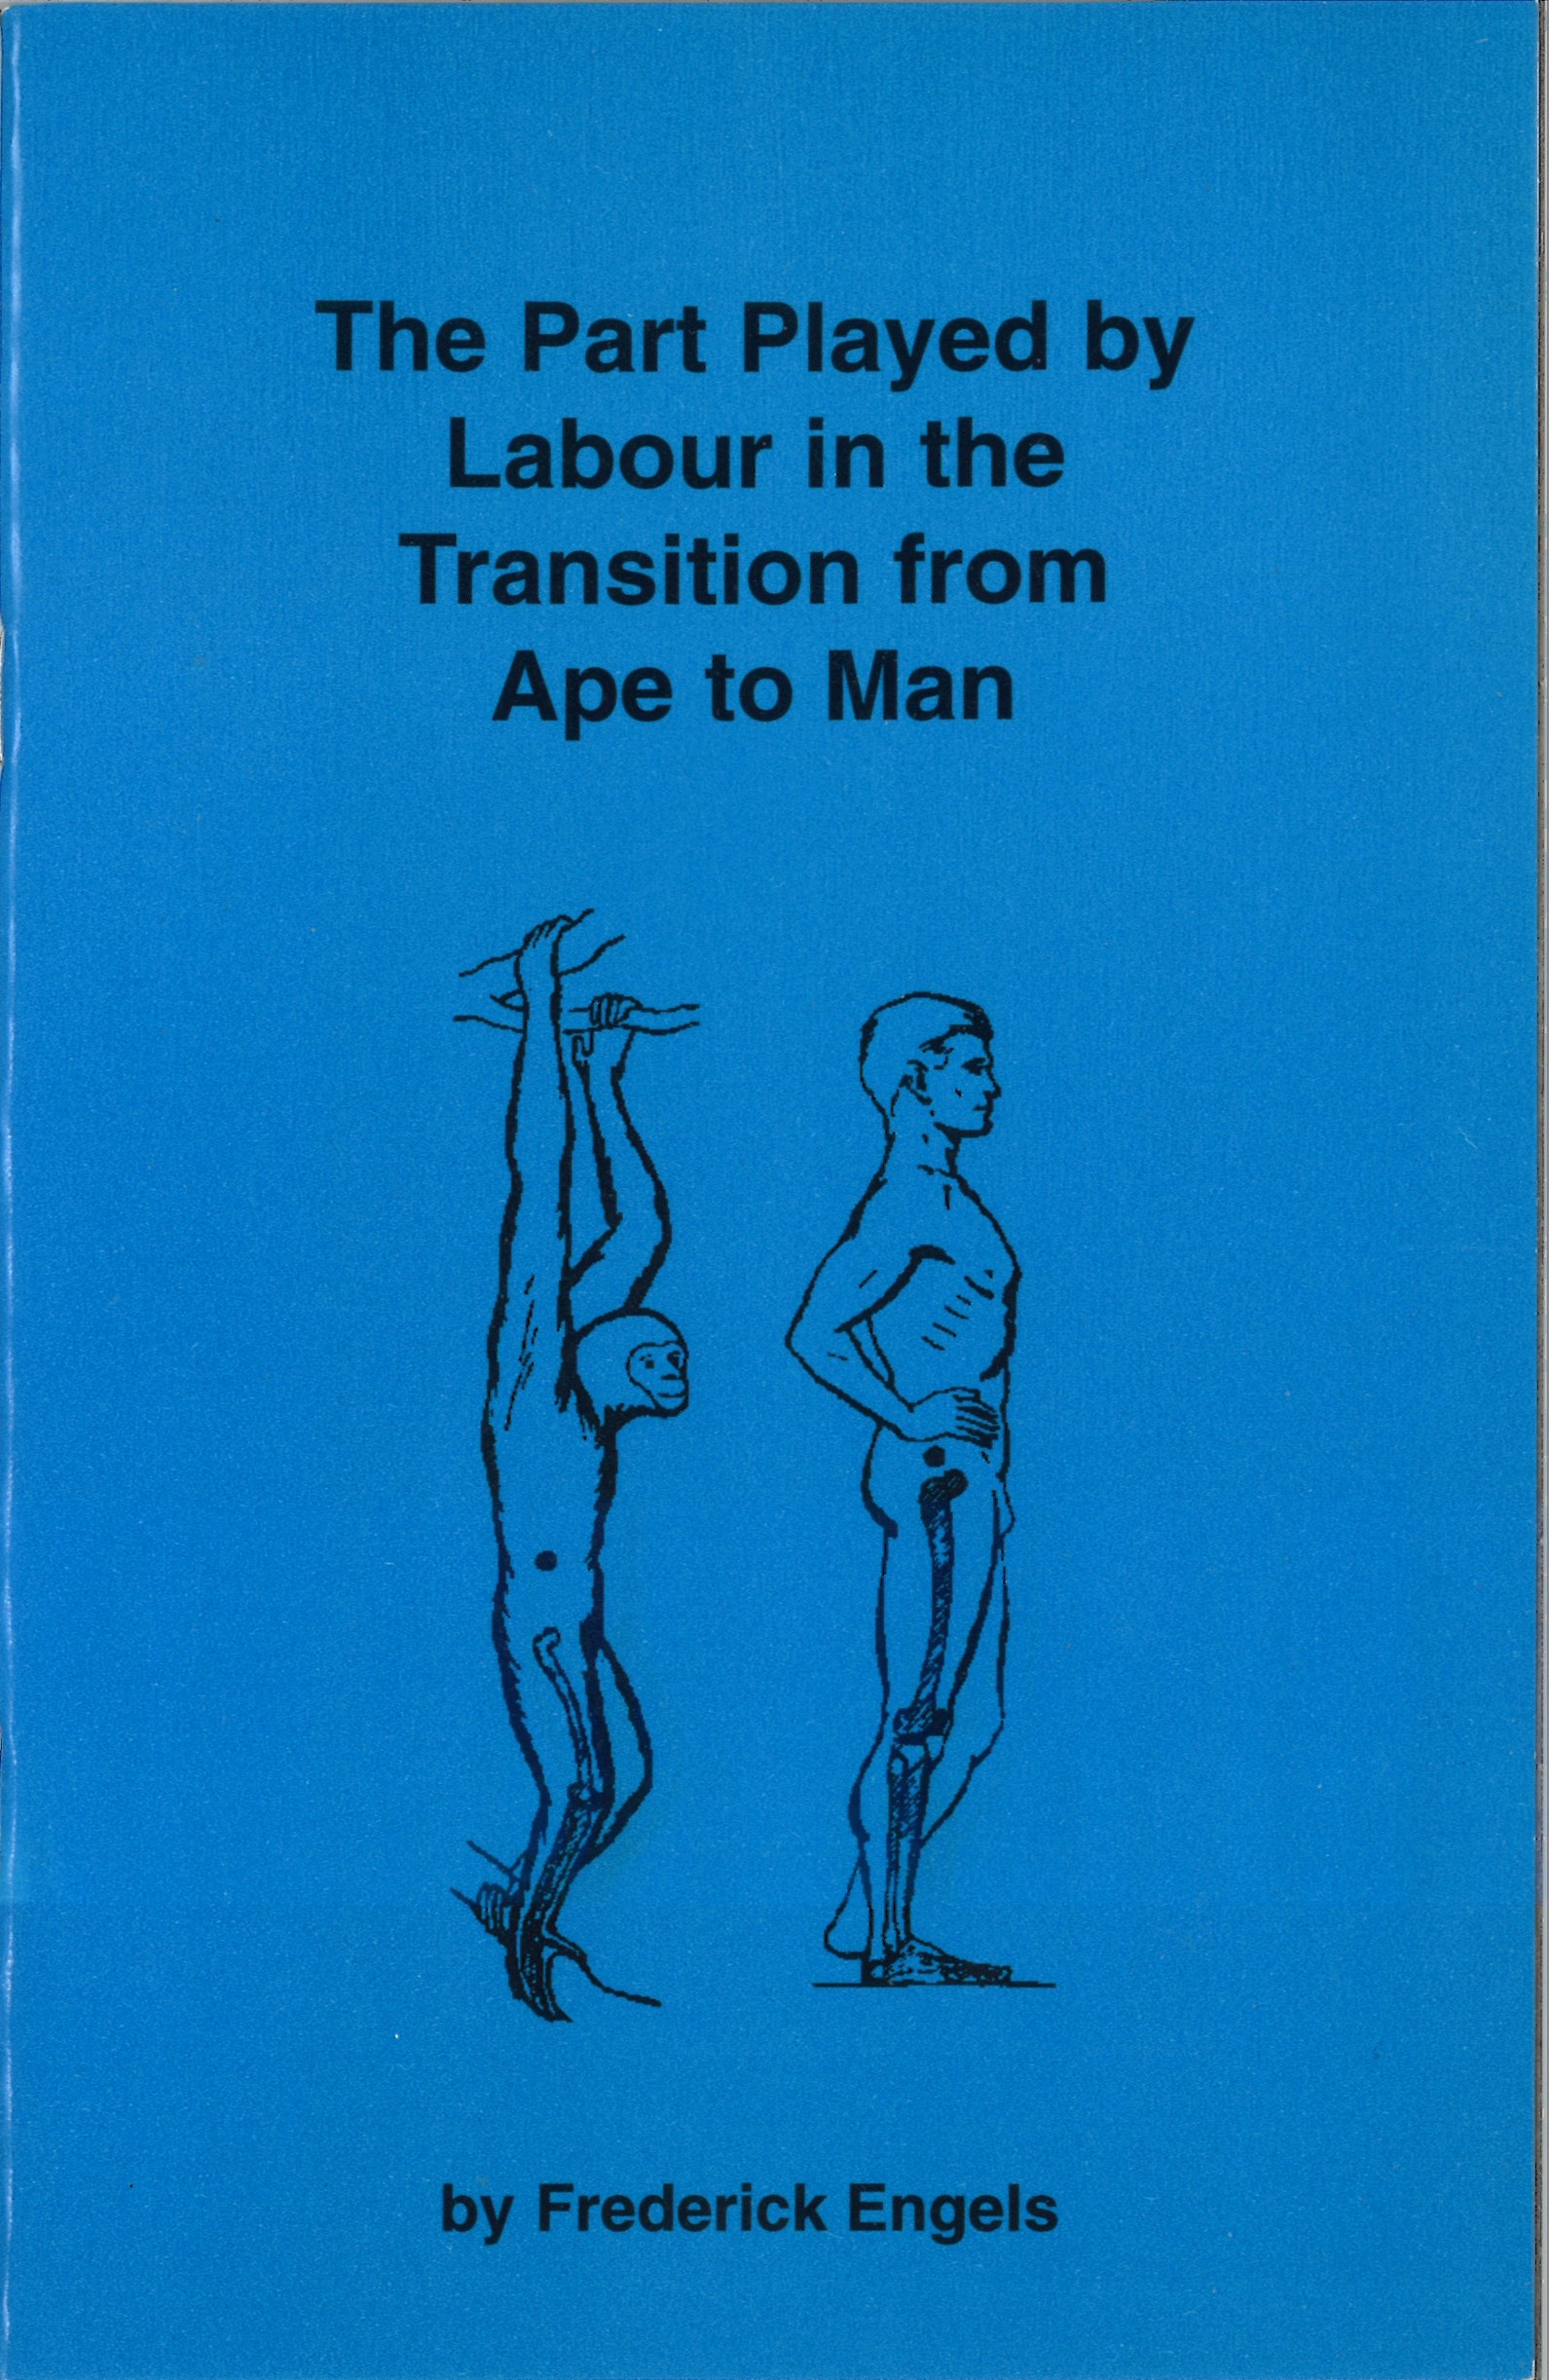 The Part Played By Labour In The Transition From Ape To Man